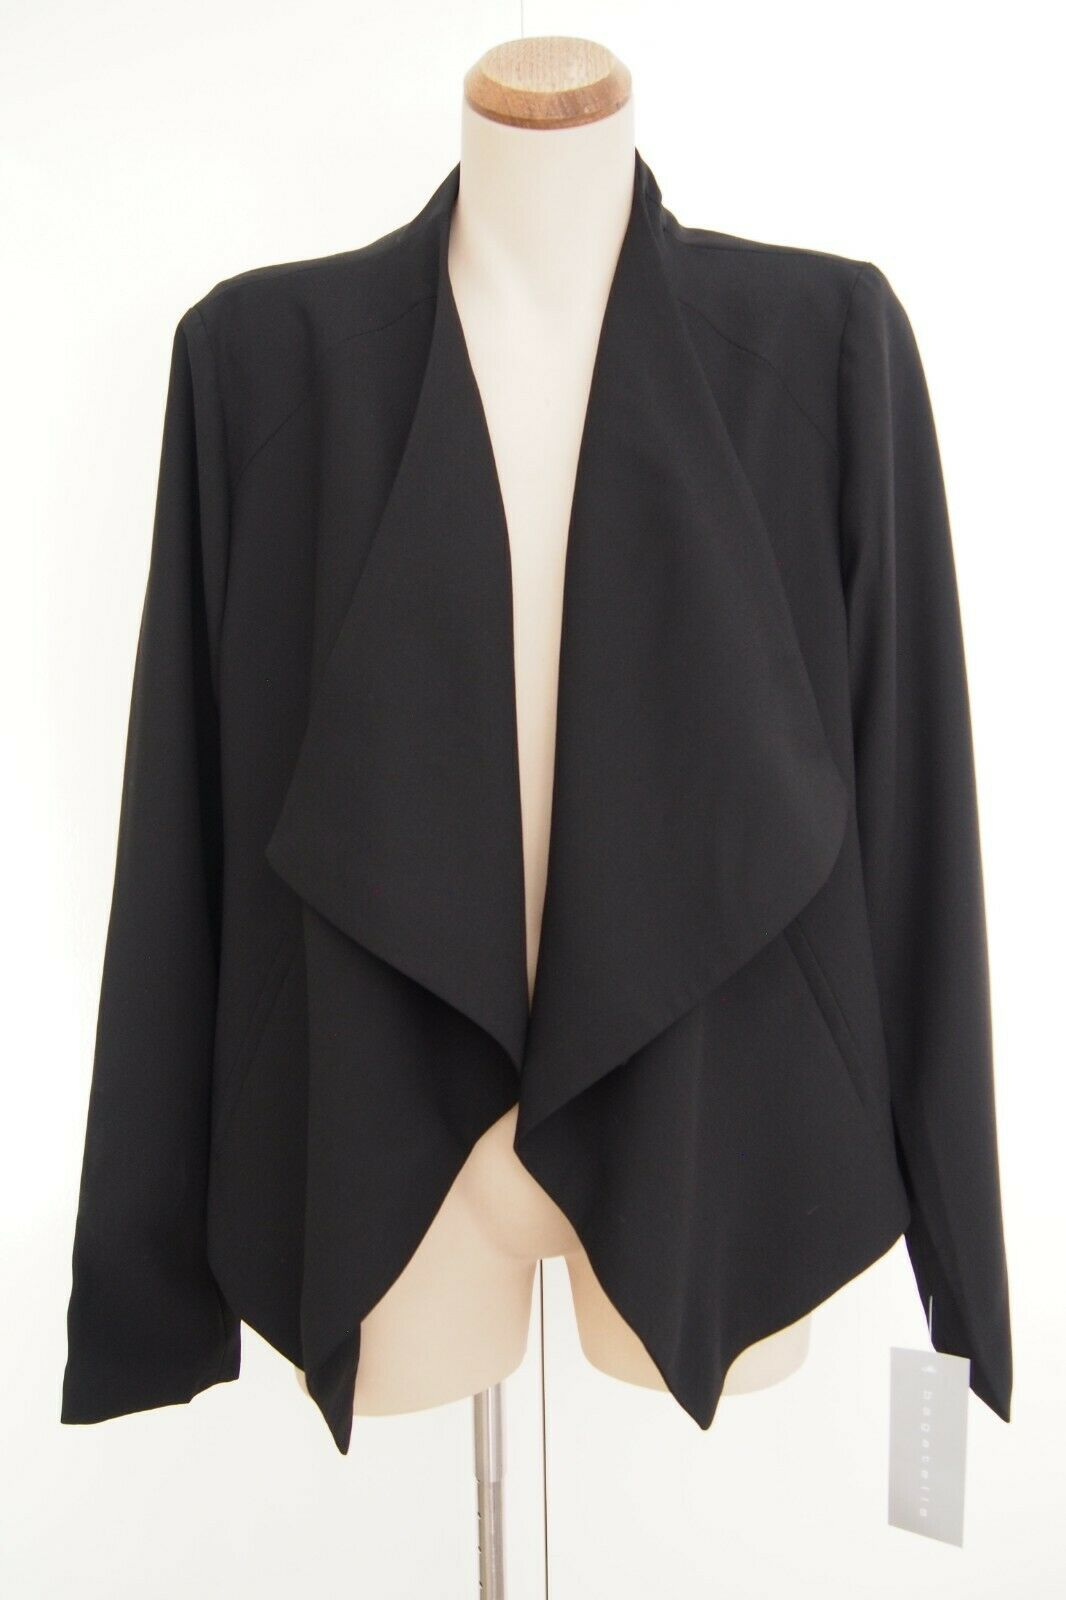 BAGATELLE Black Open Drape Front Crepe Jacket Size XL / 16 BRAND NEW WITH TAGS